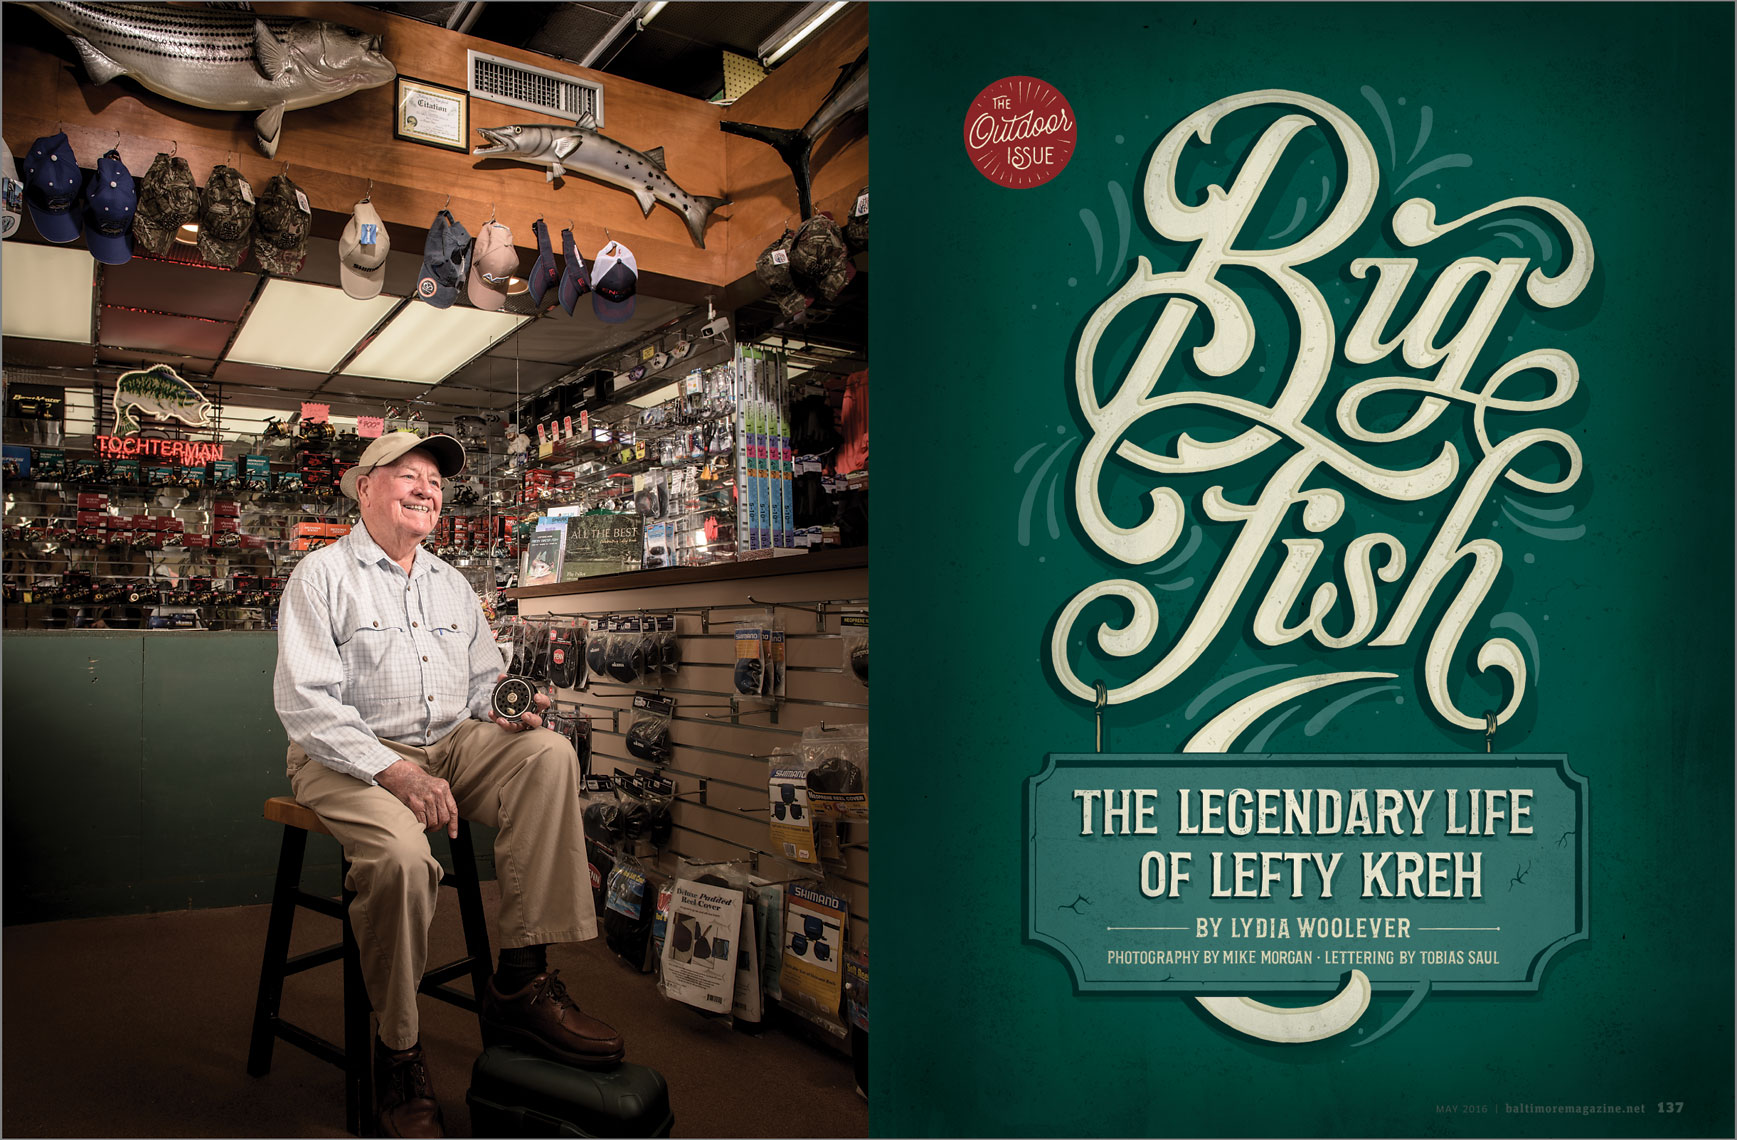 Baltimore Magazine tear sheet featuring Lefty Kreh